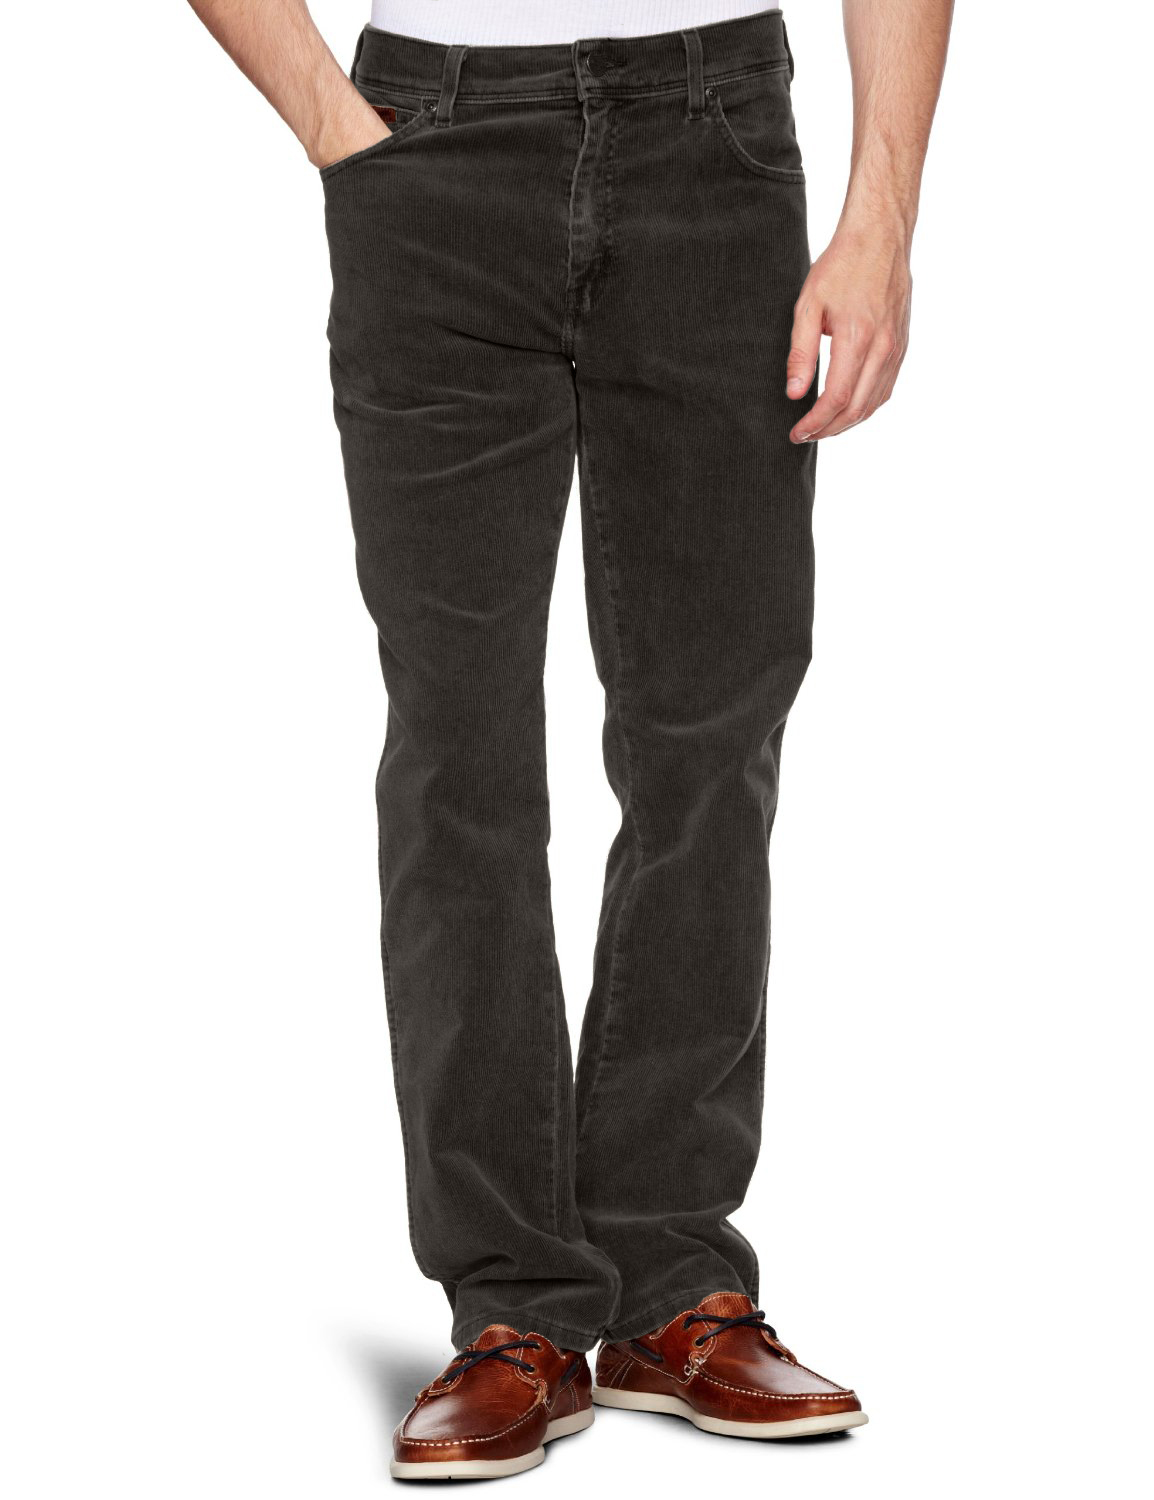 Wrangler Texas Stretch Cords New Men's Regular Fit Corduroy Jeans ...